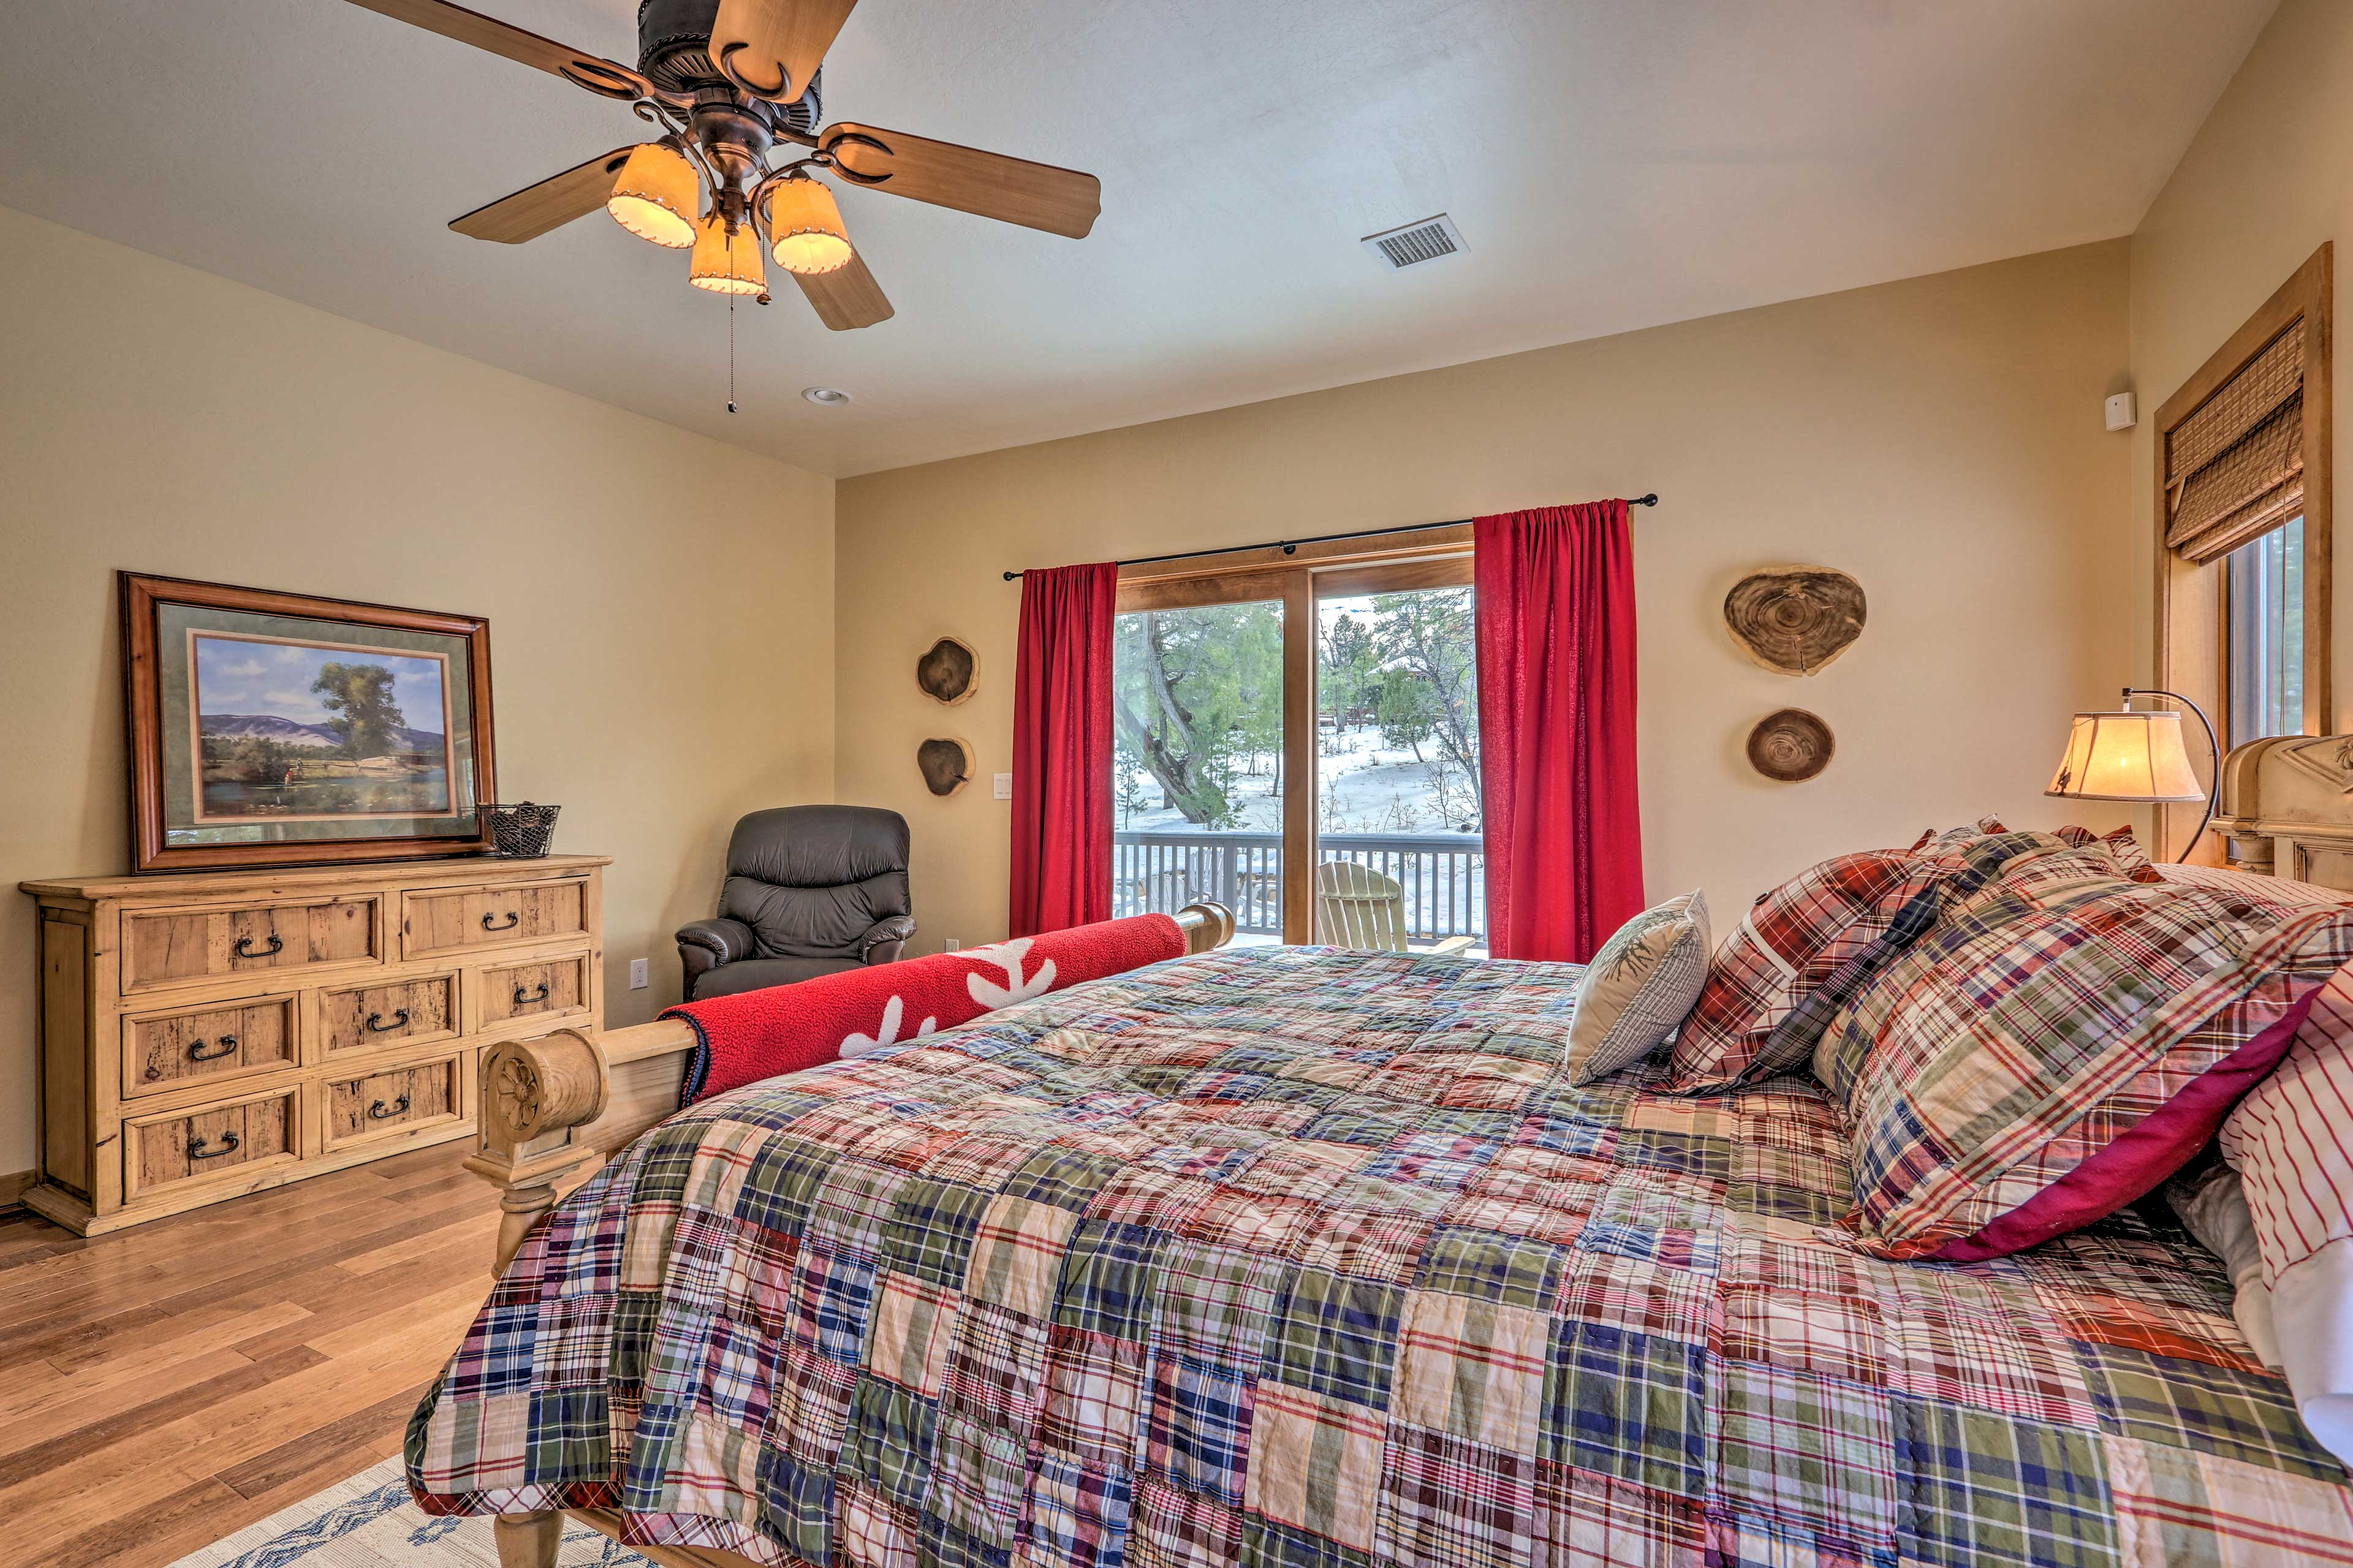 Wake up to peaceful forest views from the comfort of the king-sized bed!